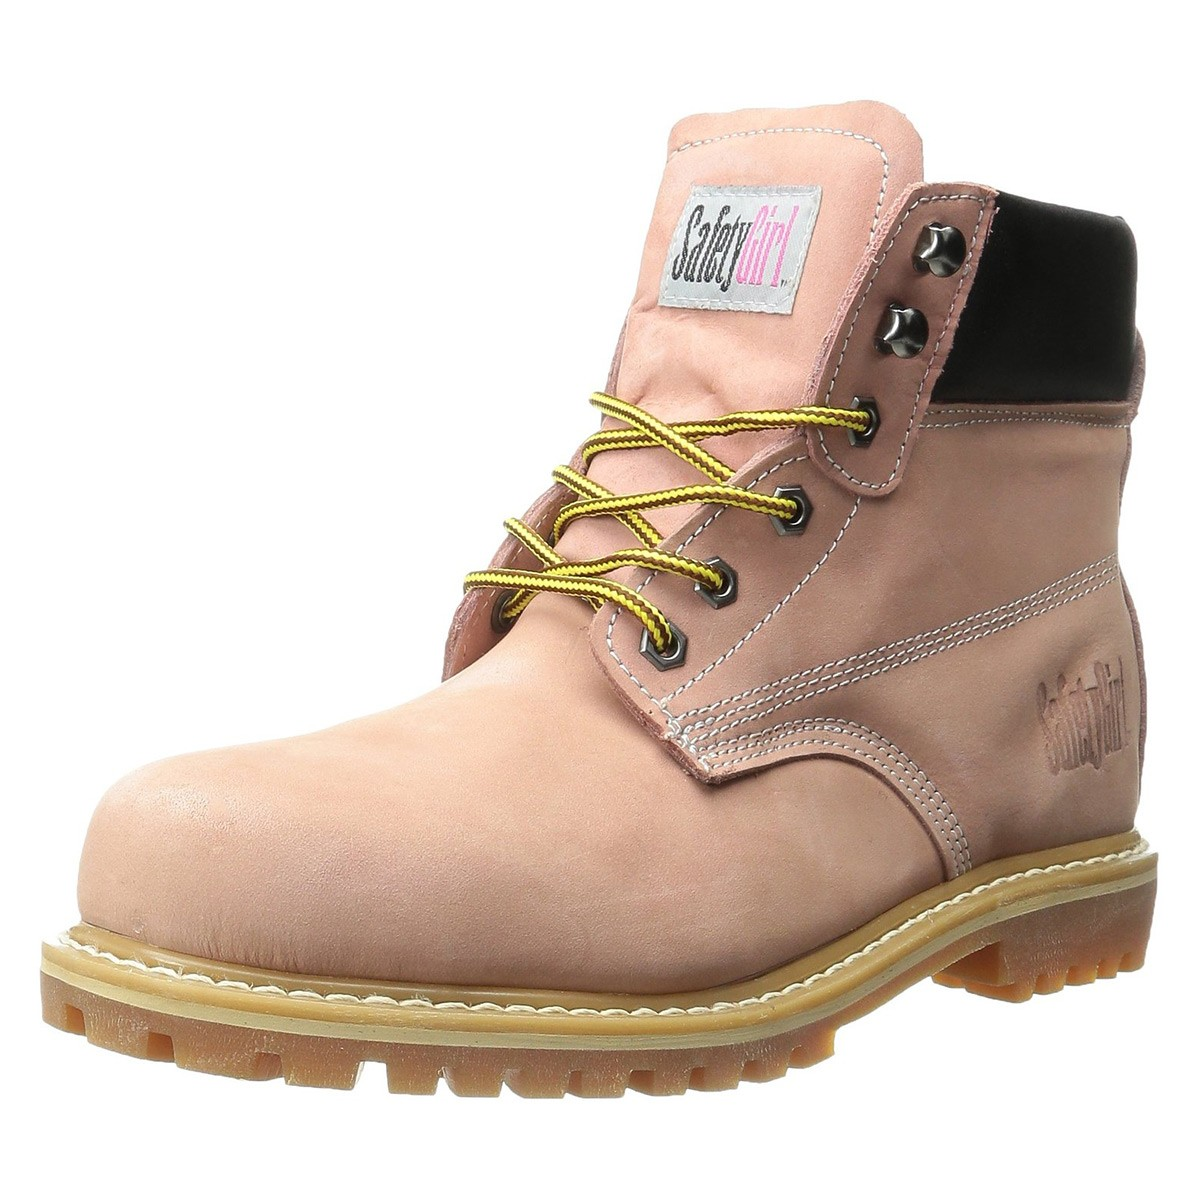 safetygirl steel toe waterproof womens work boots light